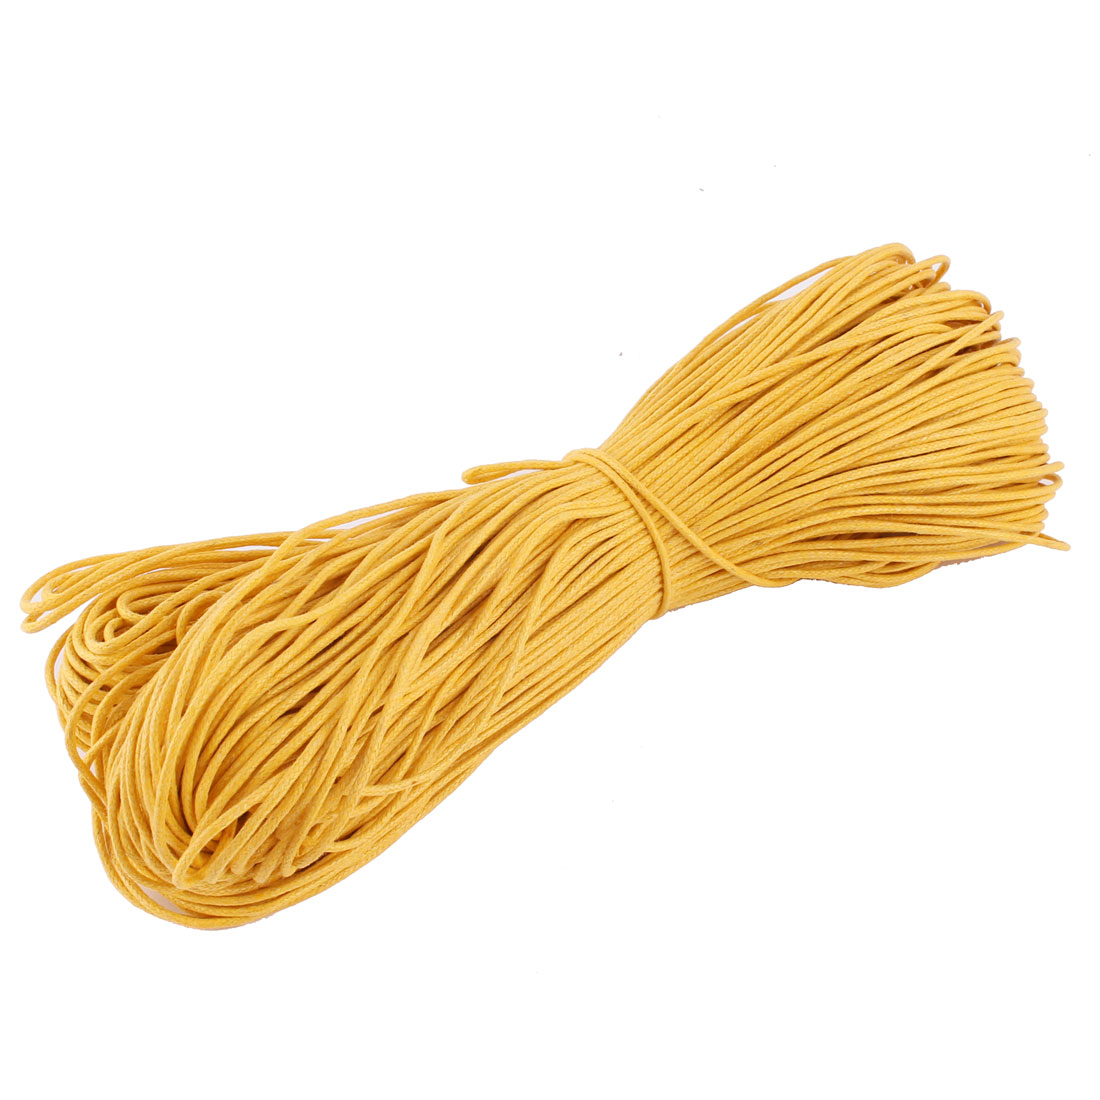 Bracelet Necklace Round Faux Leather Making String Beading Thread Cord Apricot 80m Length